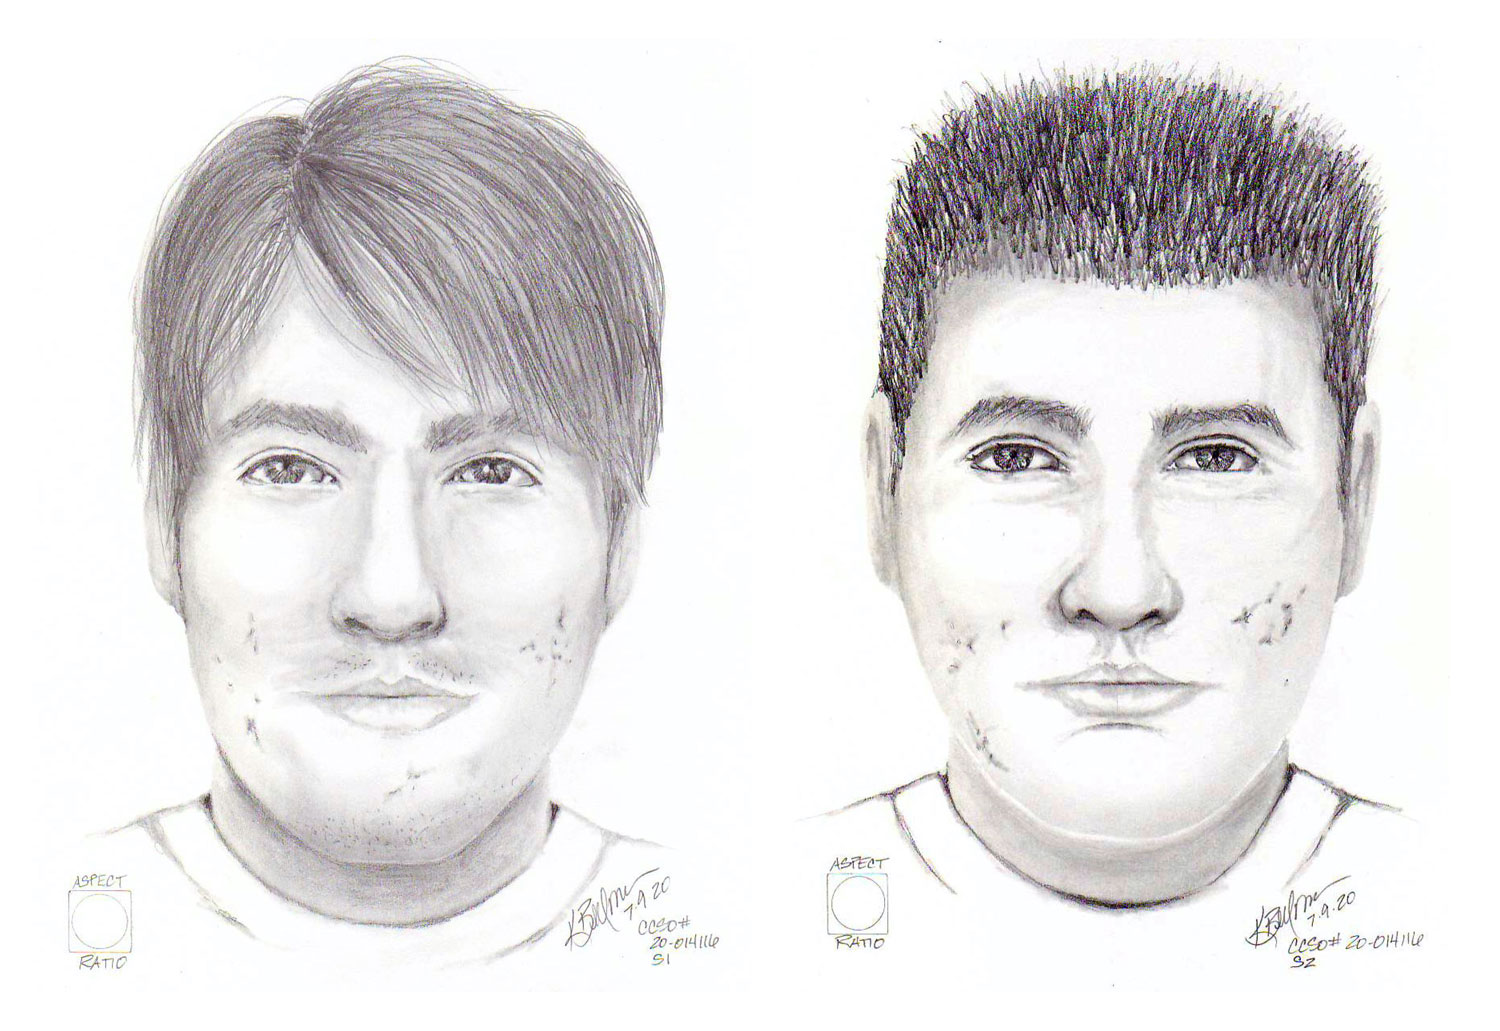 Suspect sketches